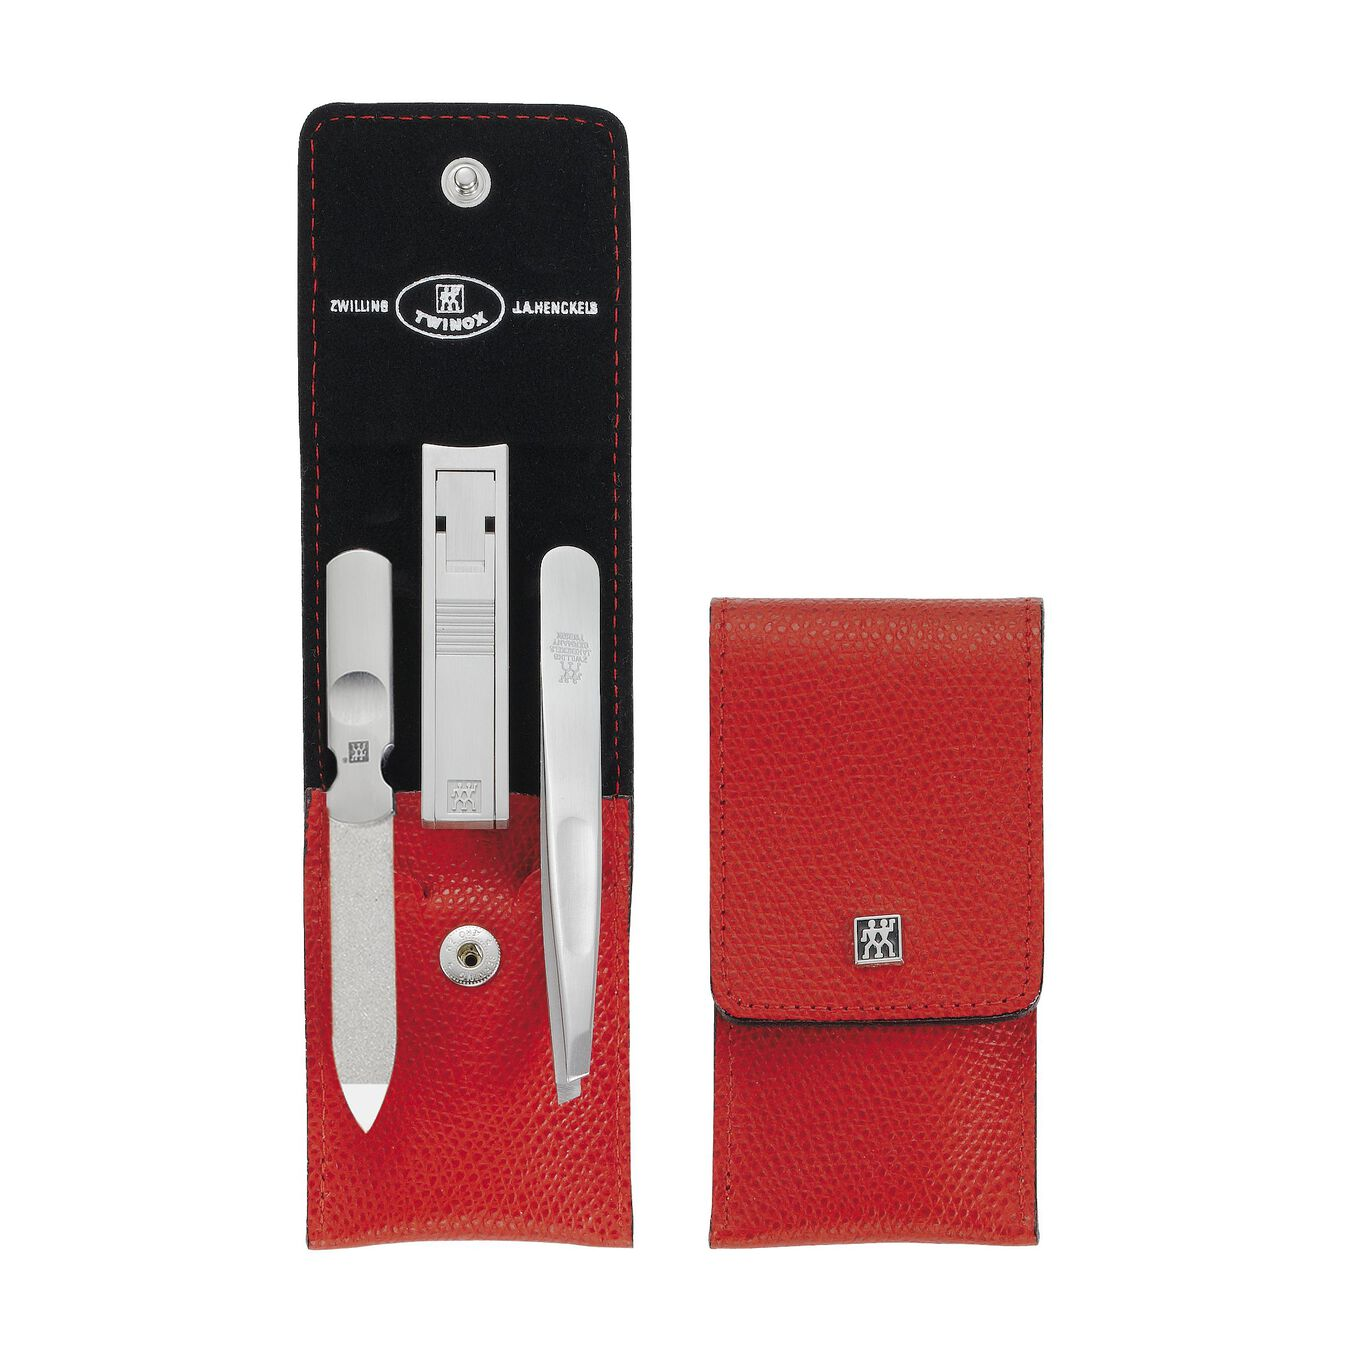 Snap fastener case, 4 Piece   stainless steel   red,,large 2